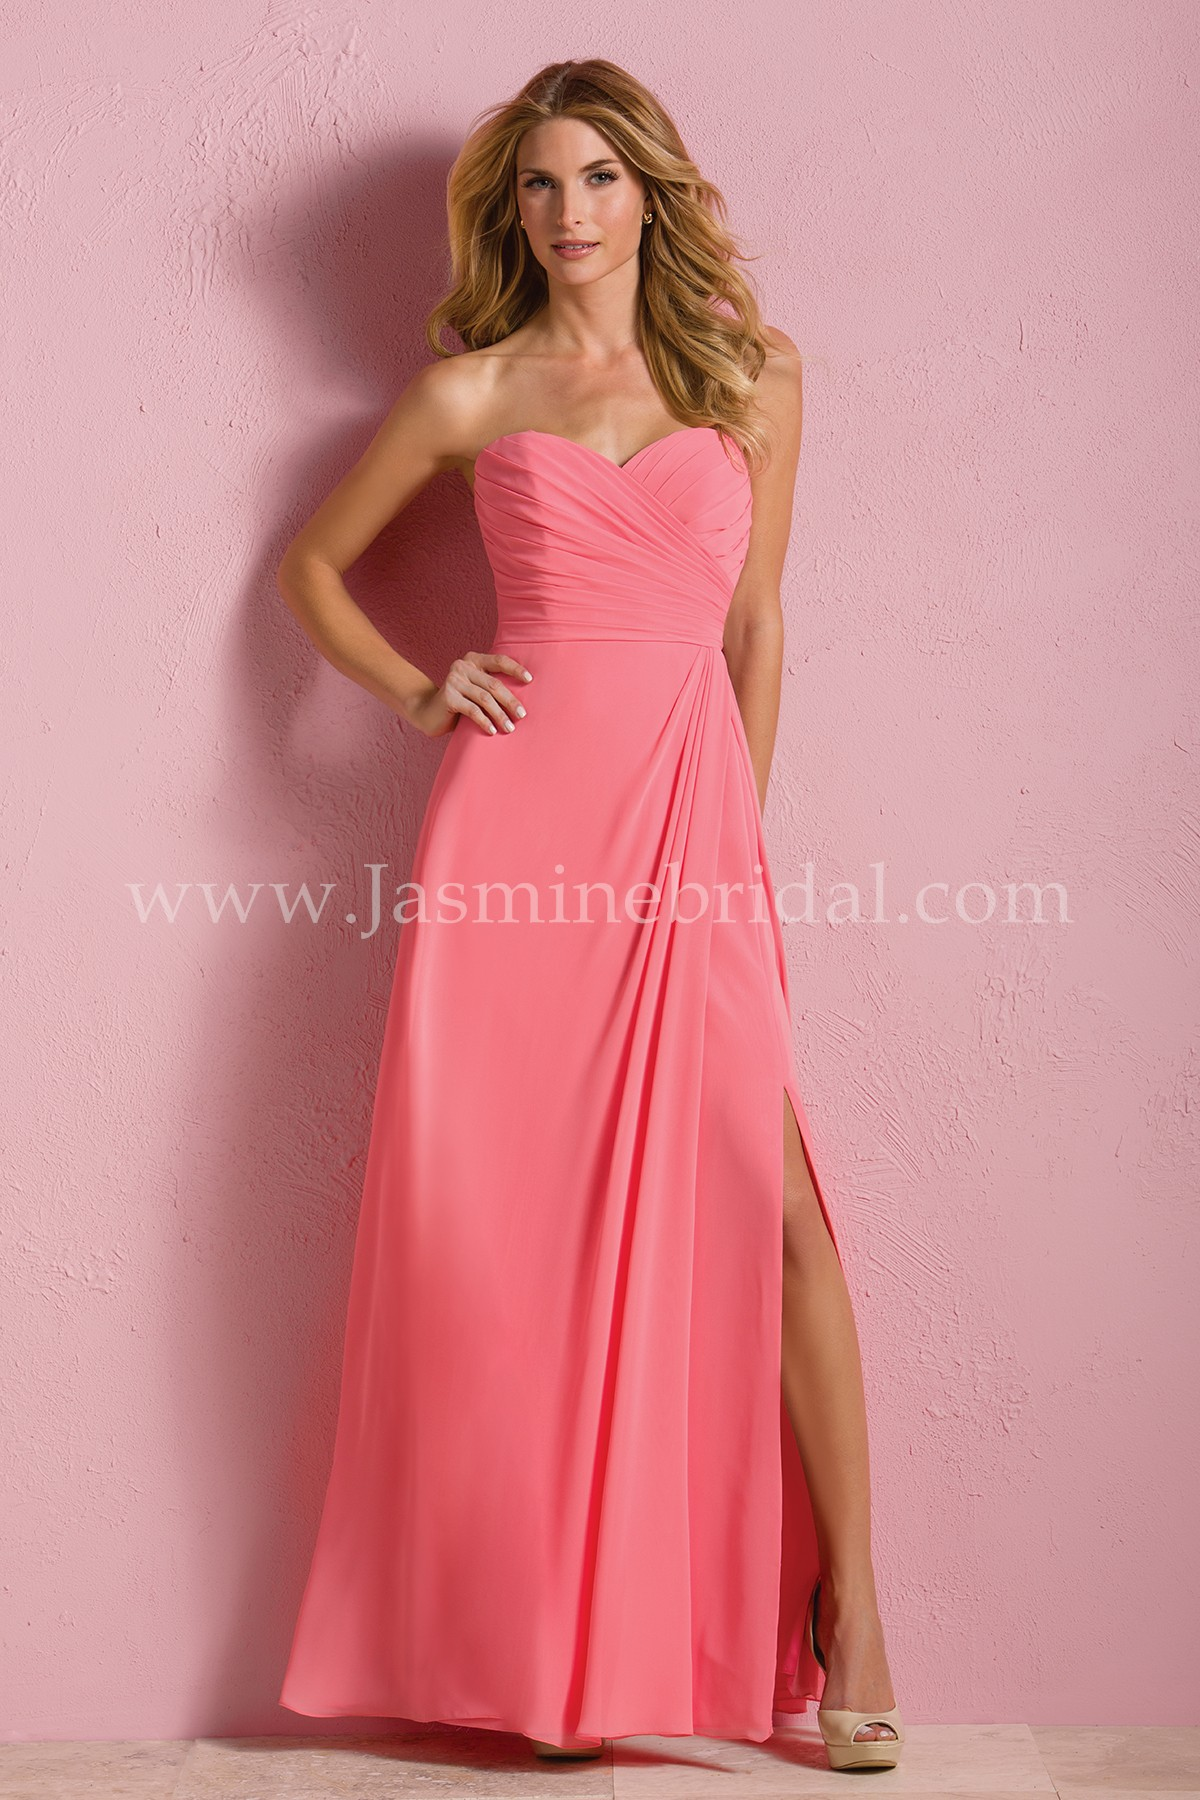 bridesmaid-dresses-B173058-F